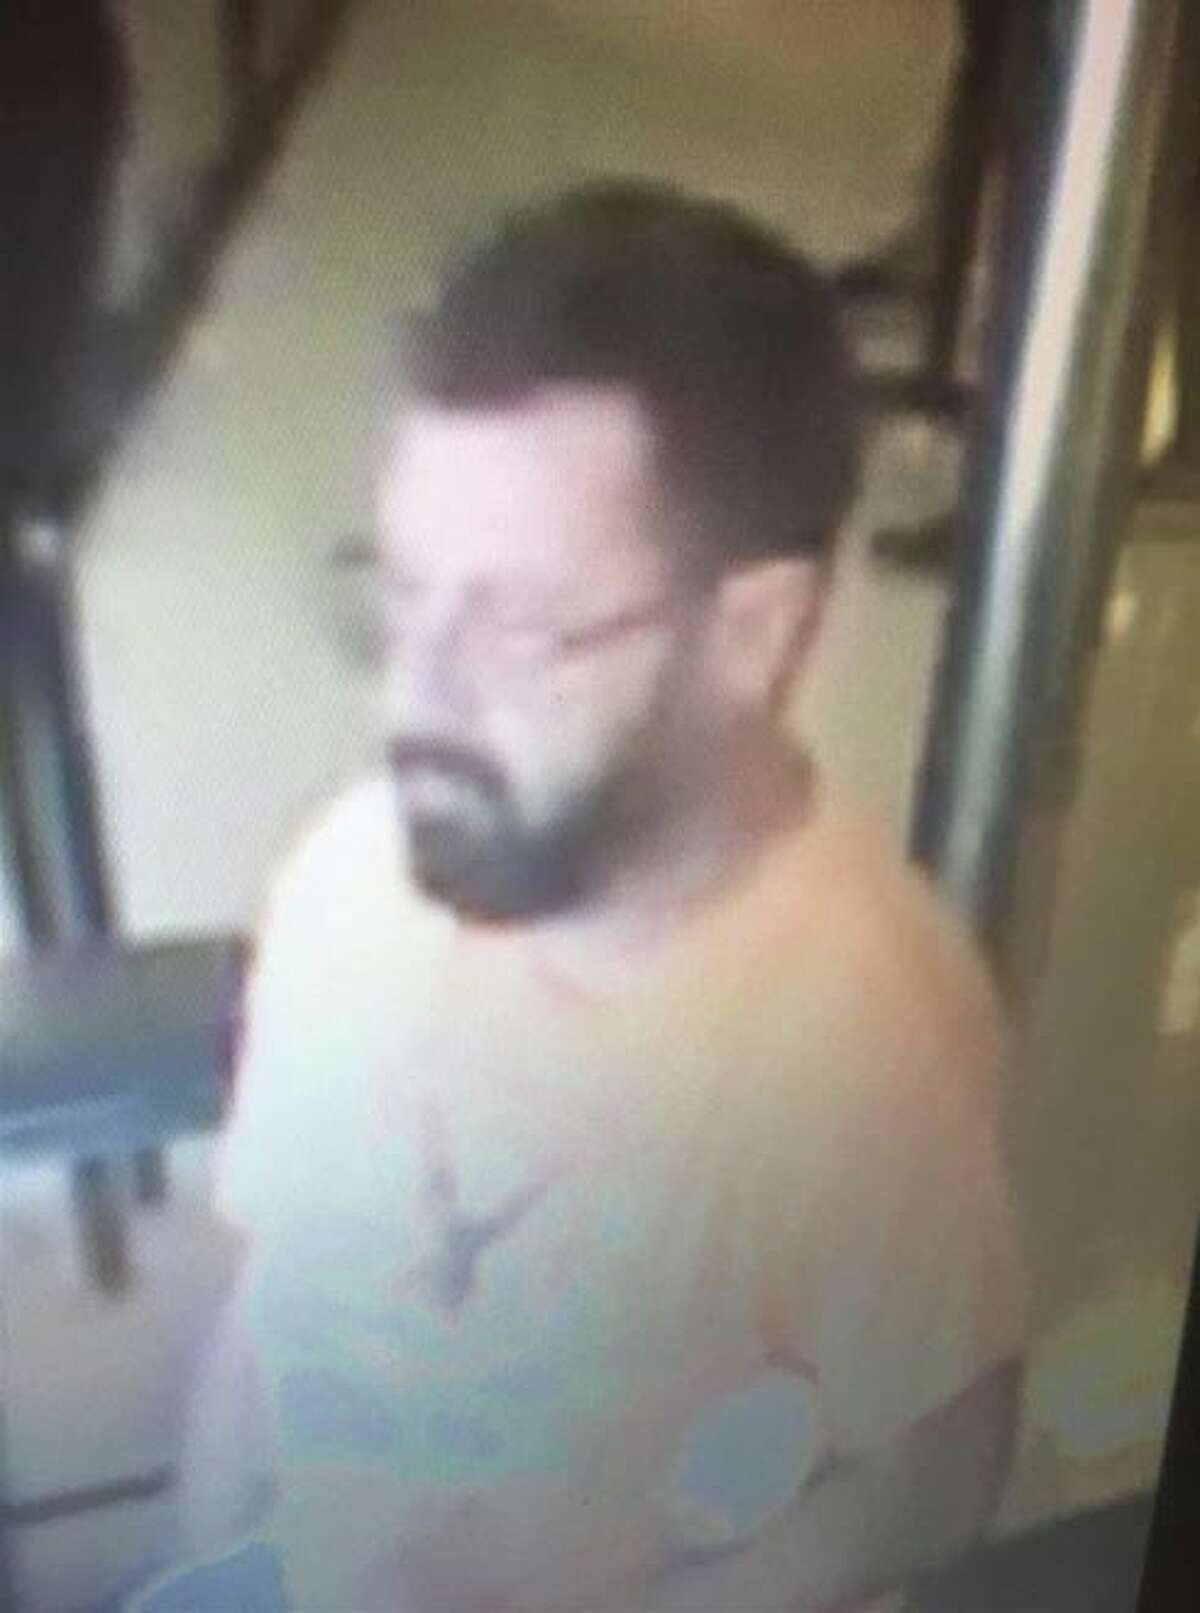 Laredo police said this man took a purse from a shopping cart at a local store.